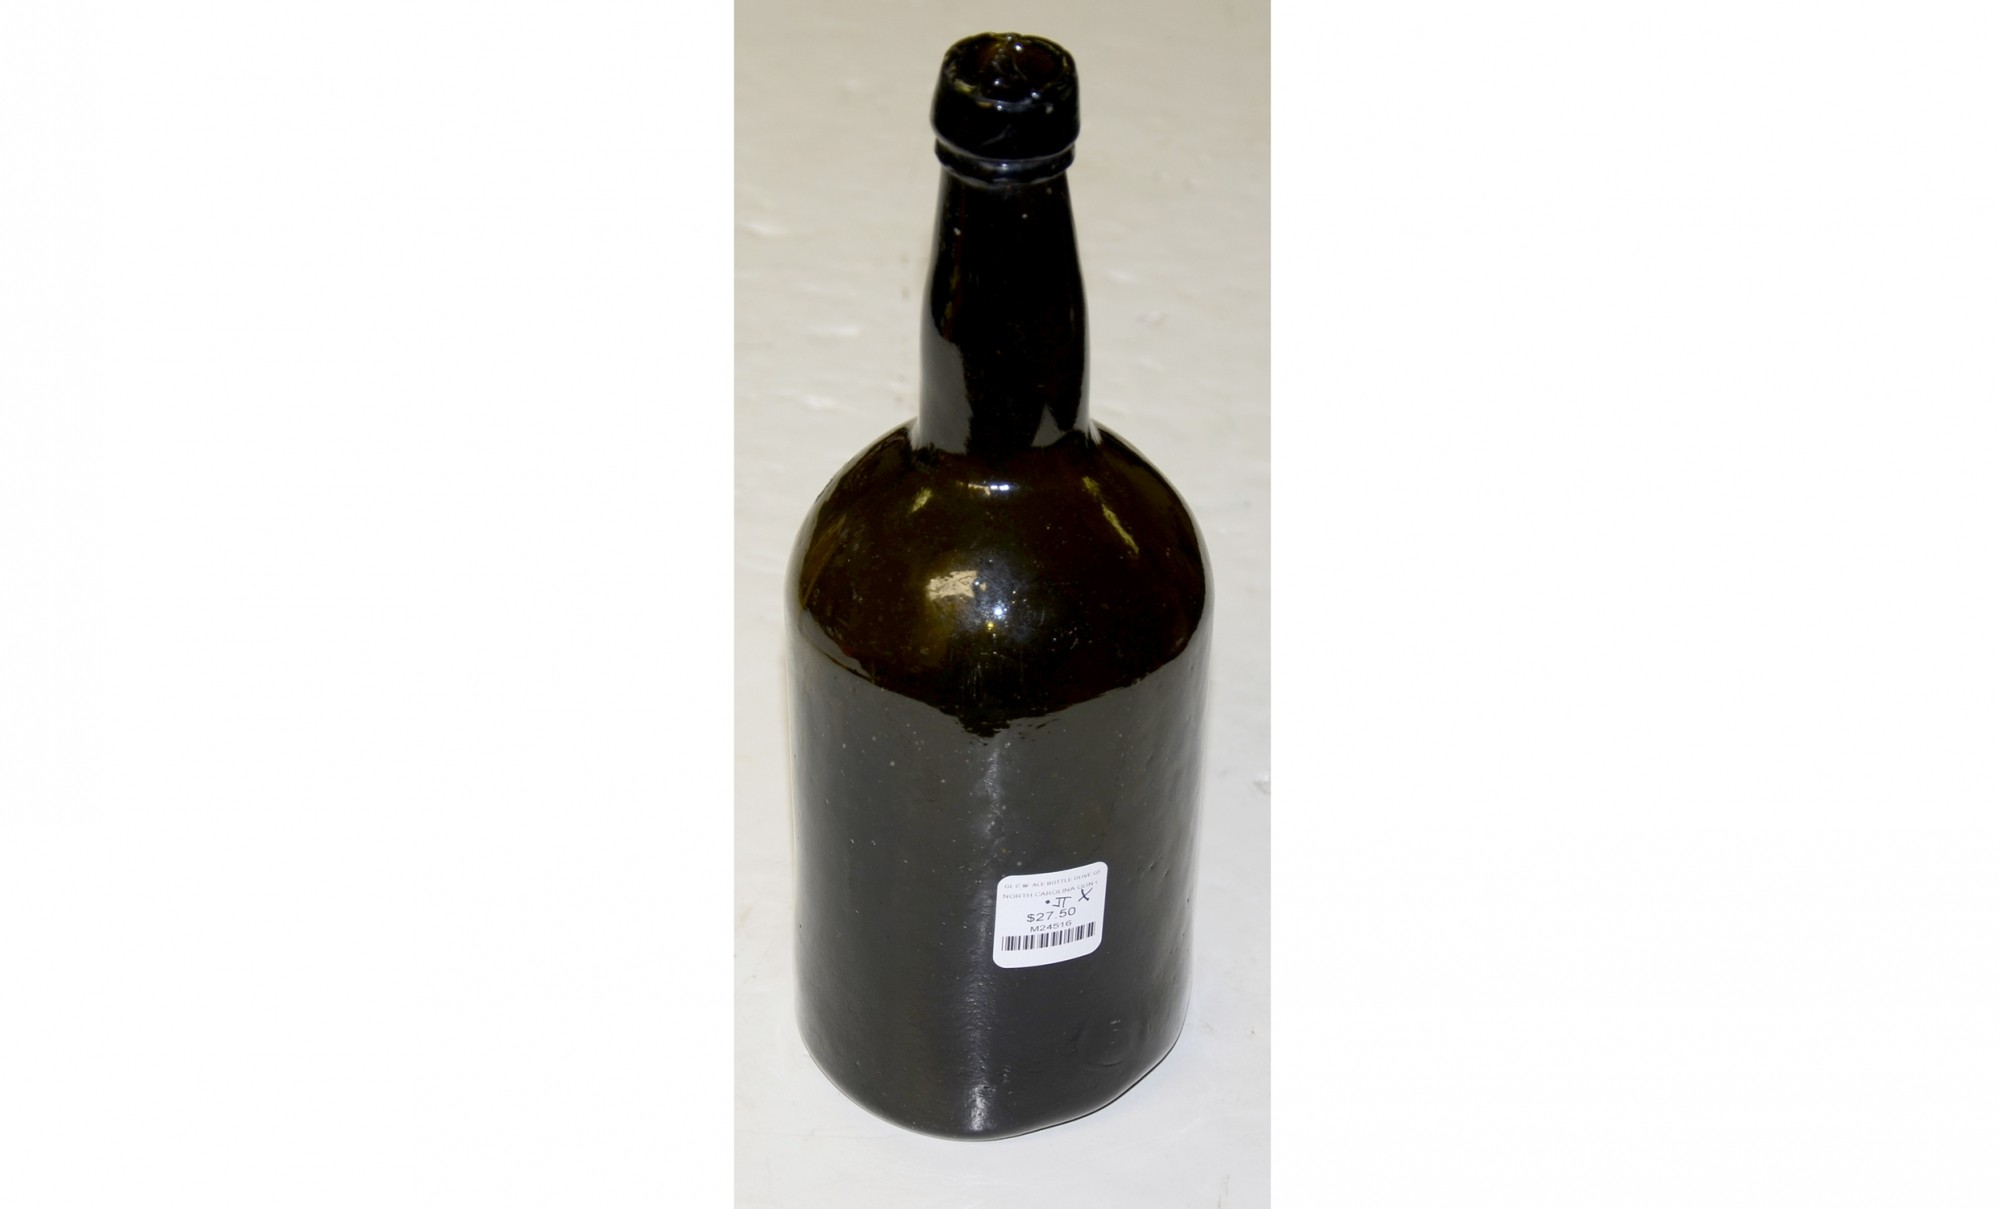 CIVIL WAR ERA ALE BOTTLE